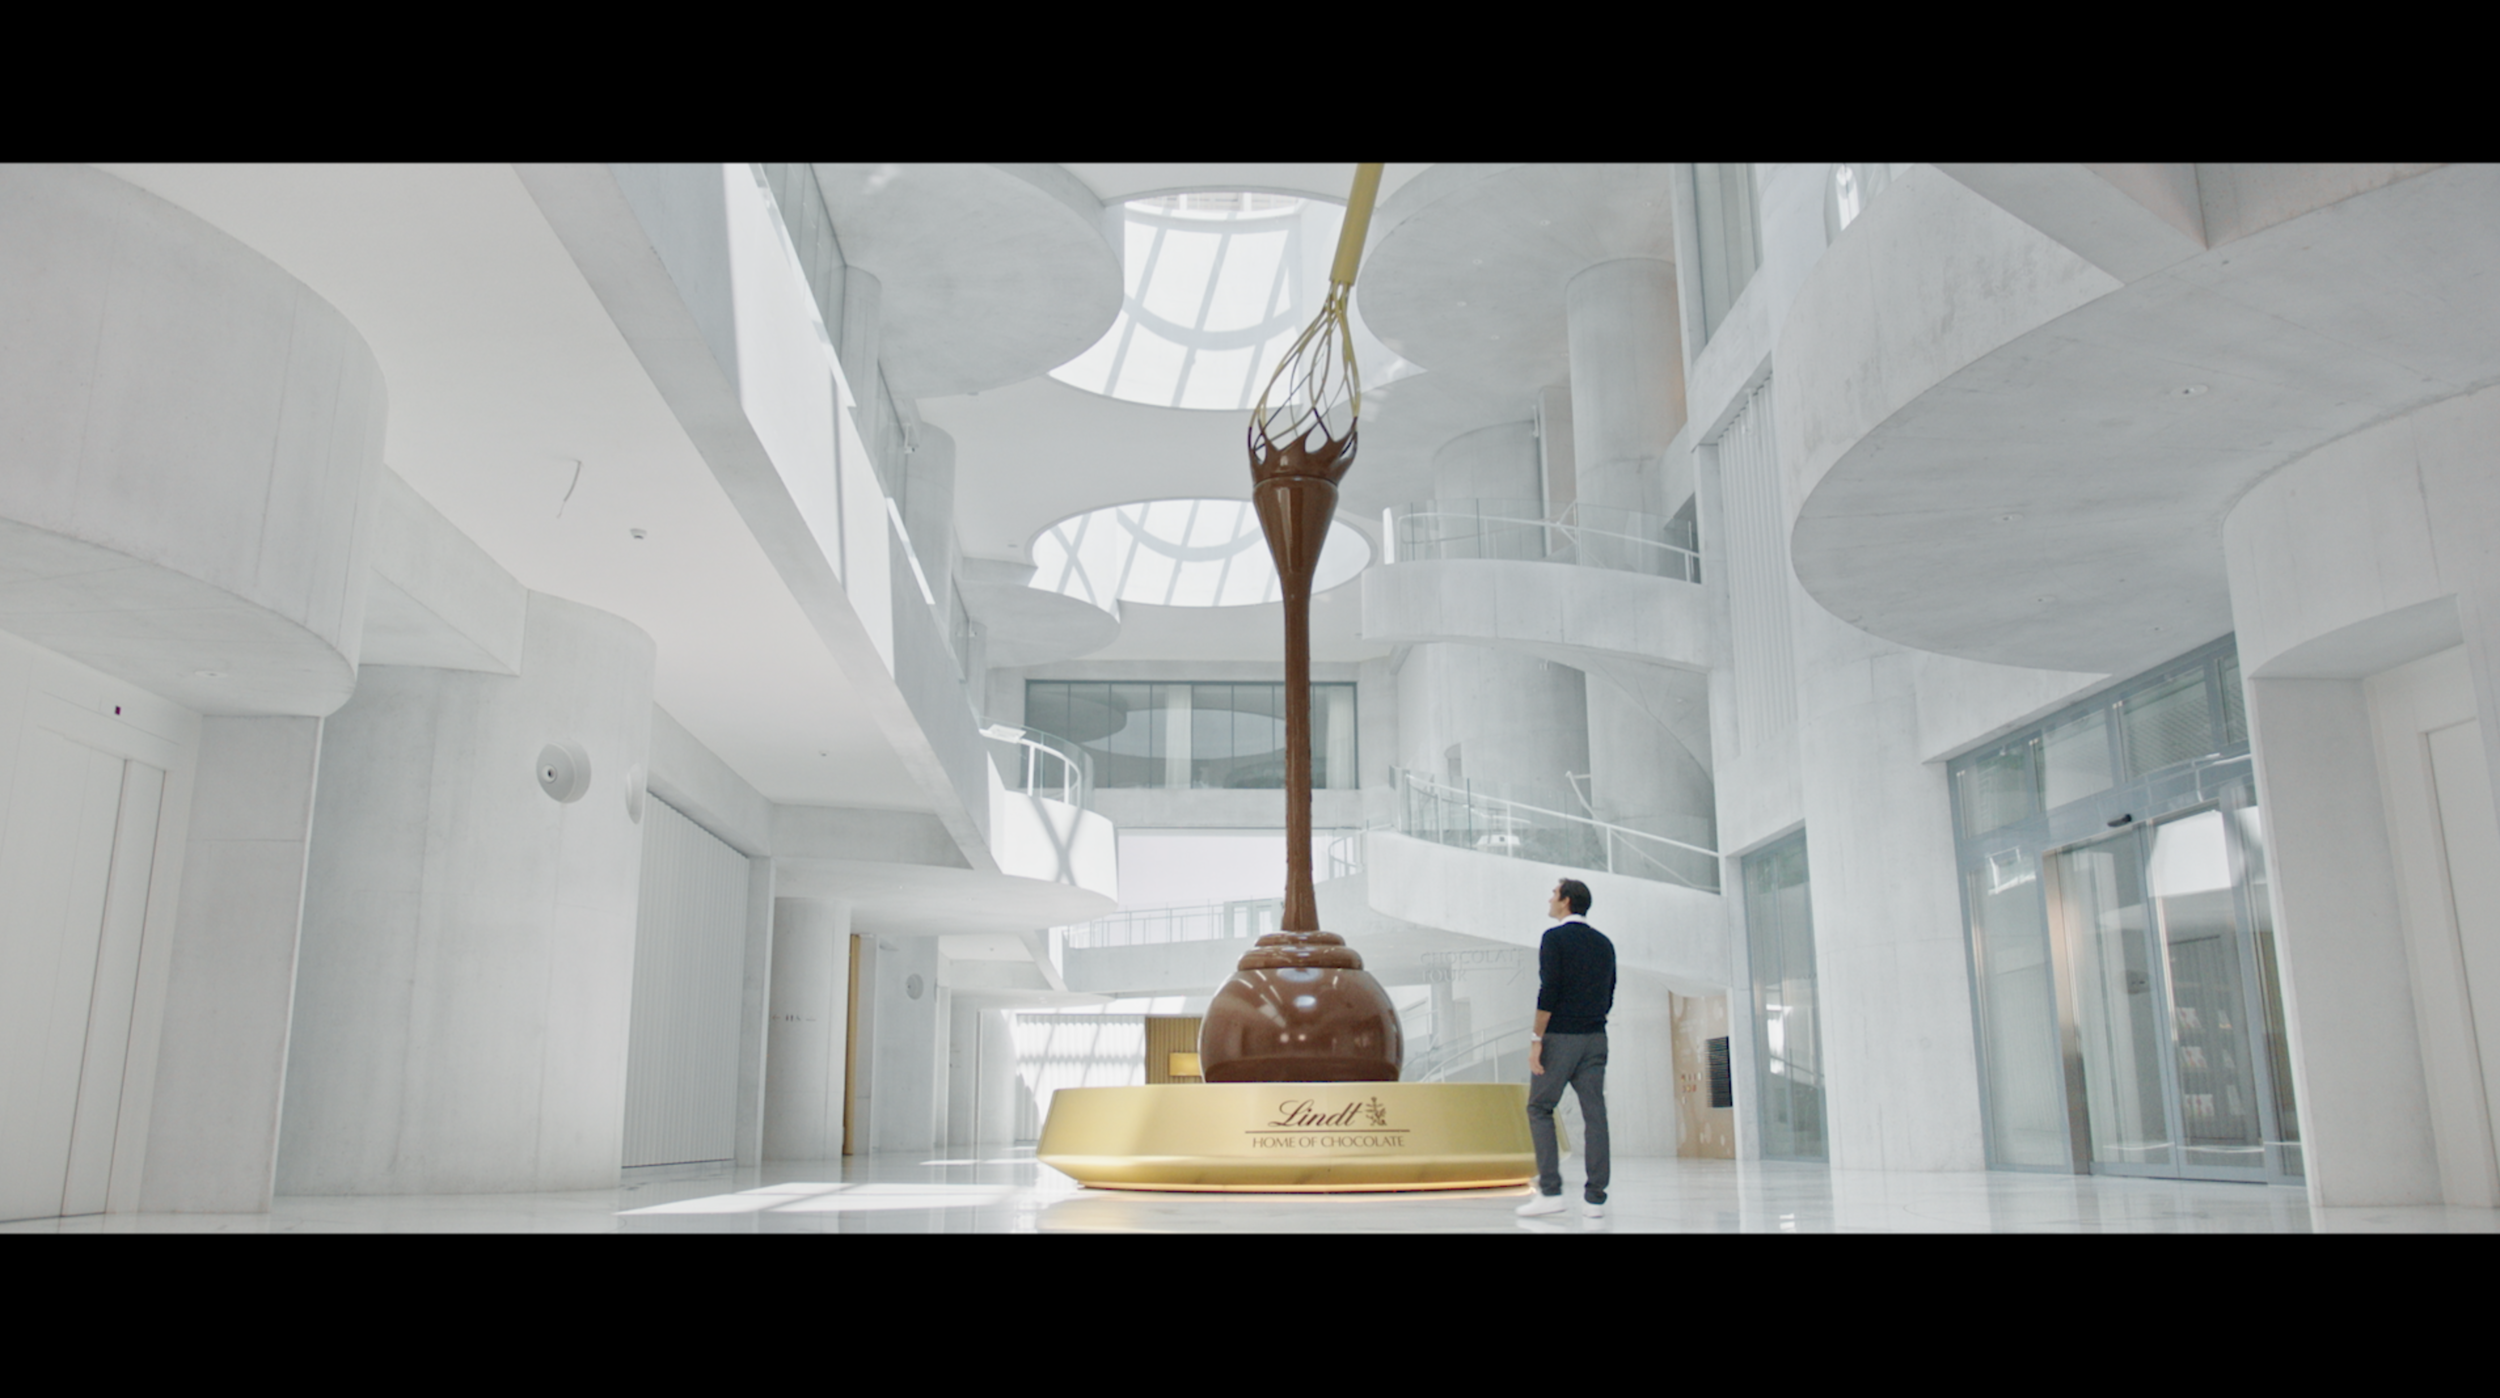 LINDT – HOME OF CHOCOLATE